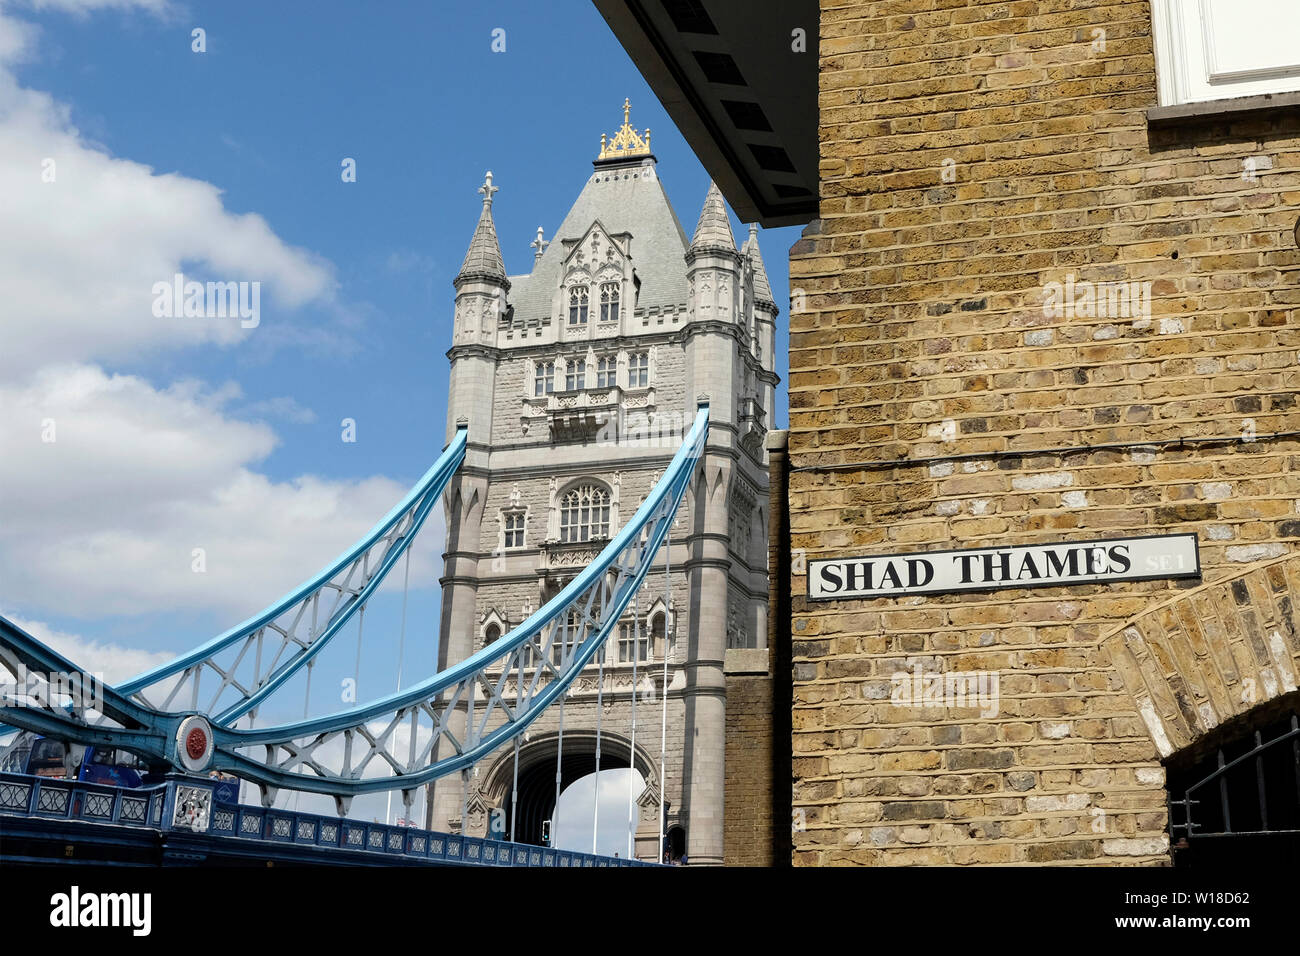 Shad Thames and Tower Bridge - Stock Image